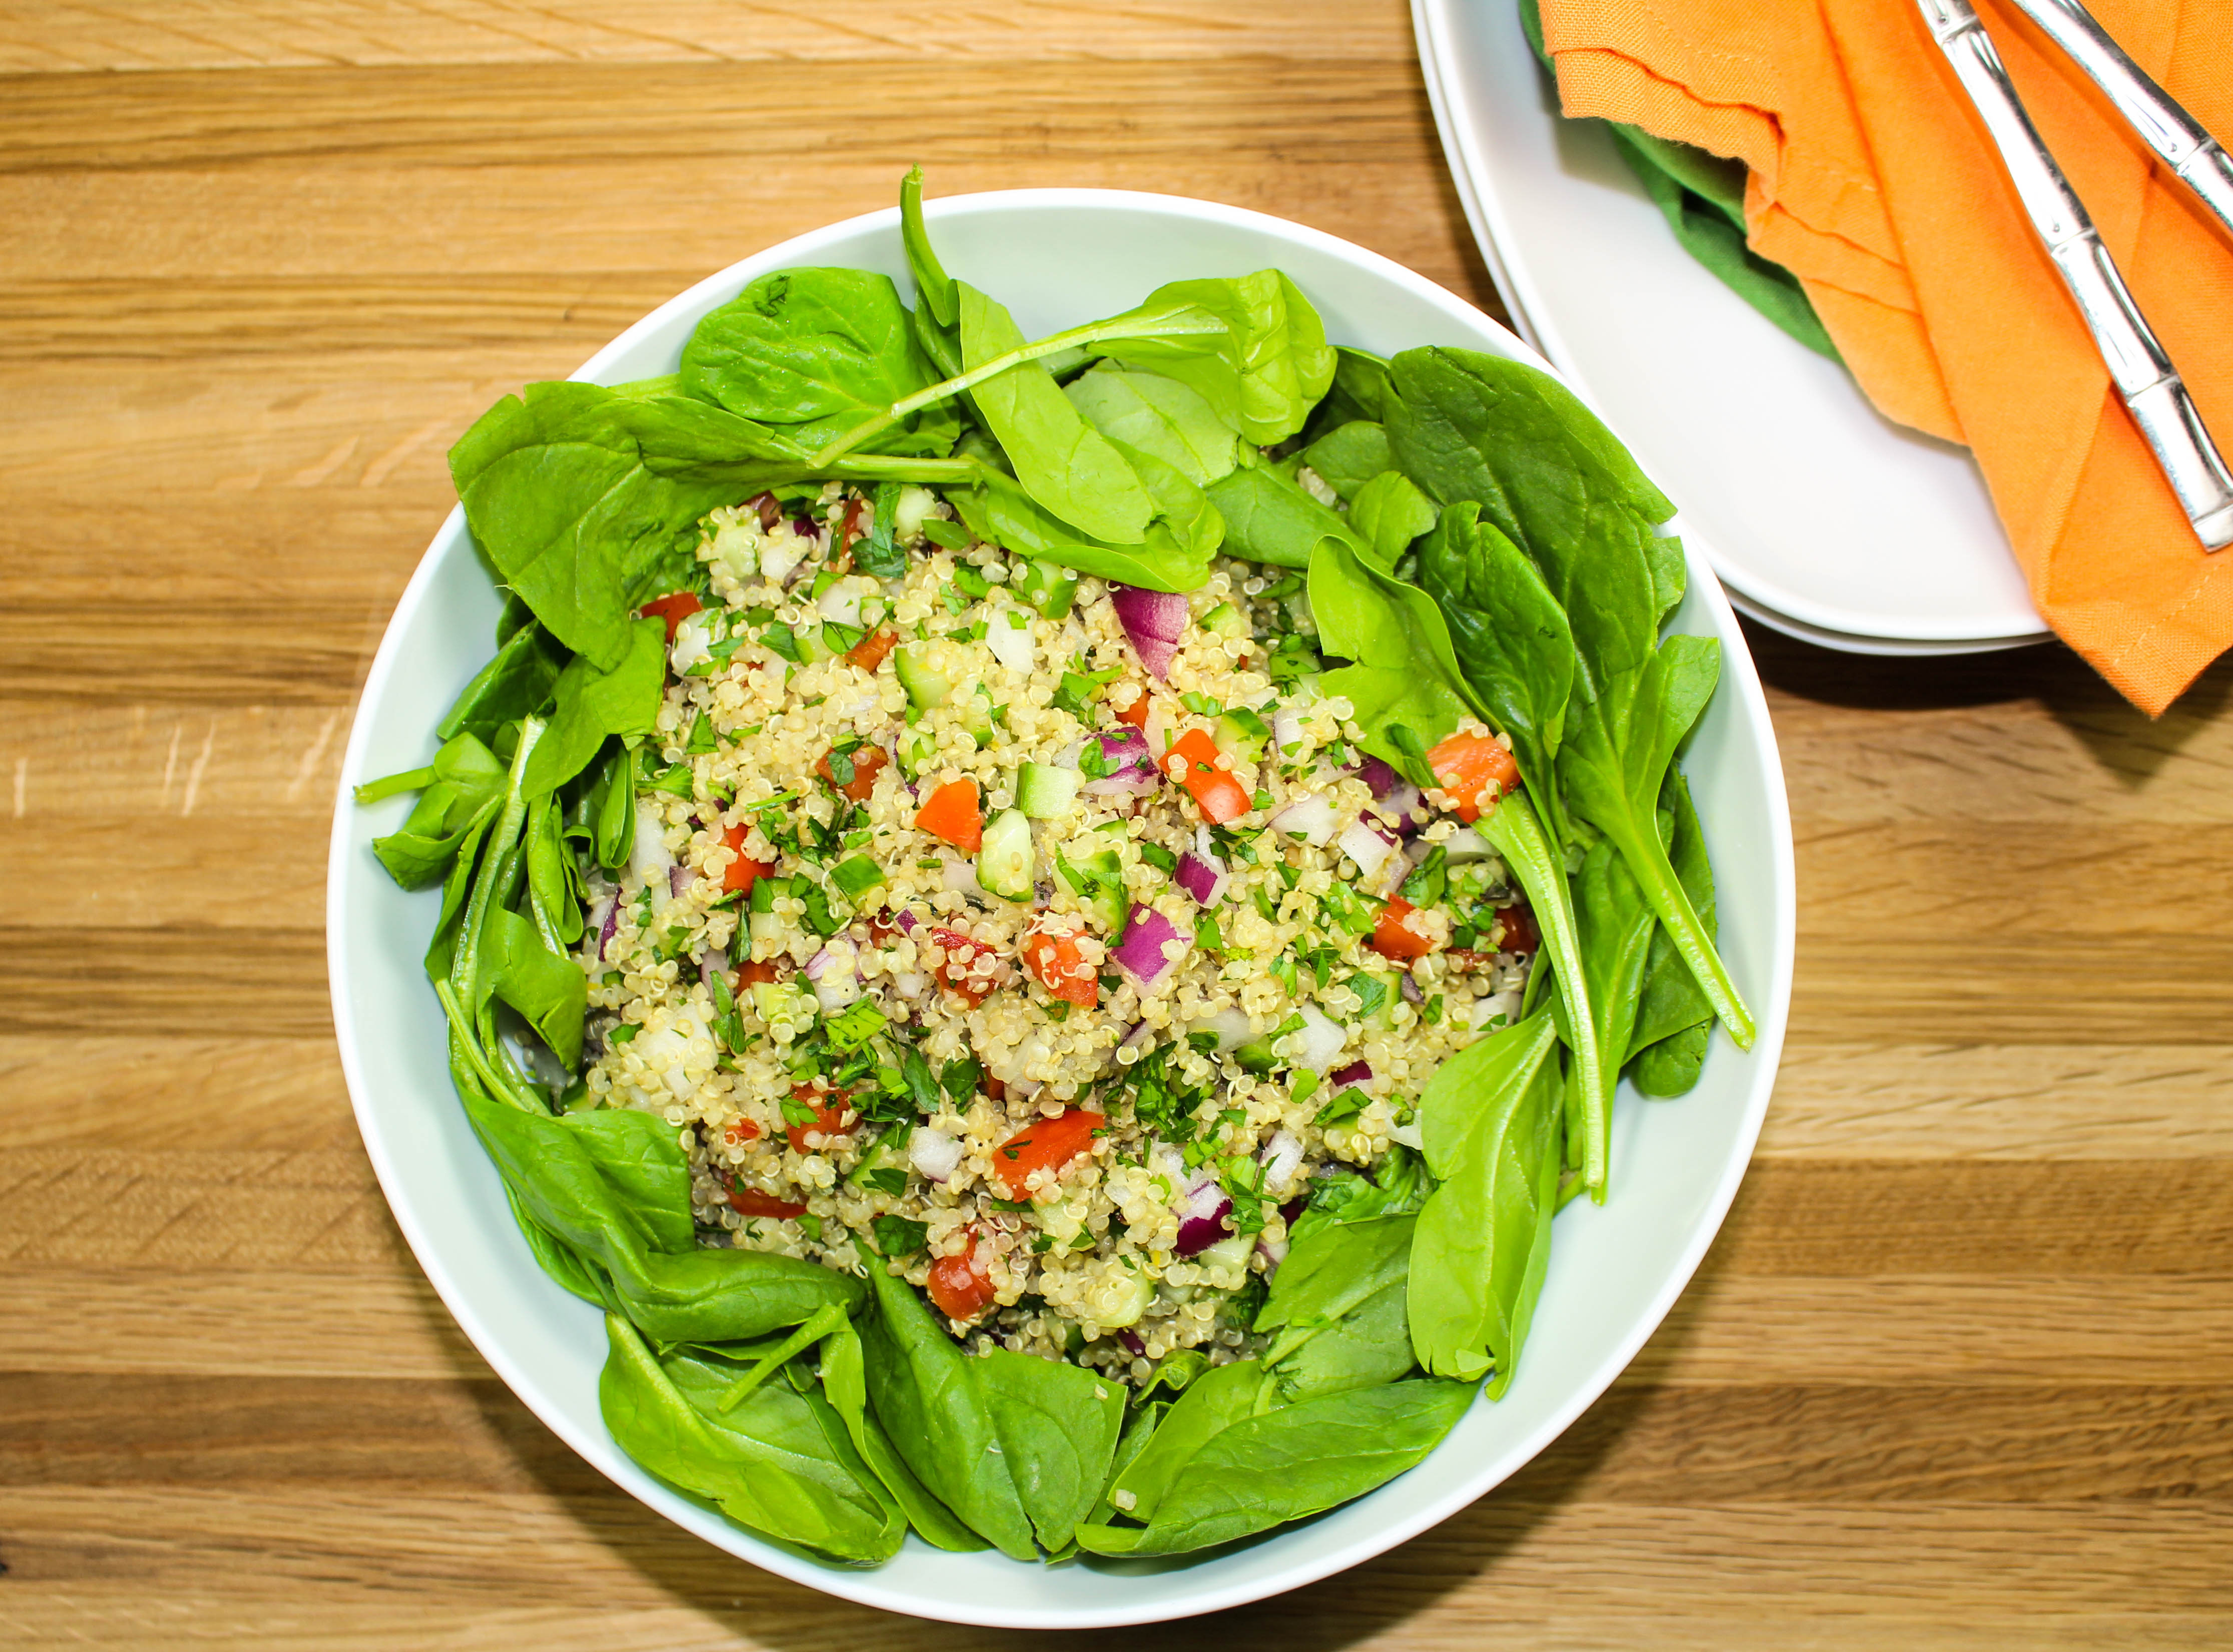 Quinoa Tabbouleh Spinach Salad is fresh vegetables, quinoa & baby spinach, topped with a vinaigrette is sure to please any non-salad lover! Great for make ahead meal. Weight Watchers friendly recipe. www.bitesofflavor.com